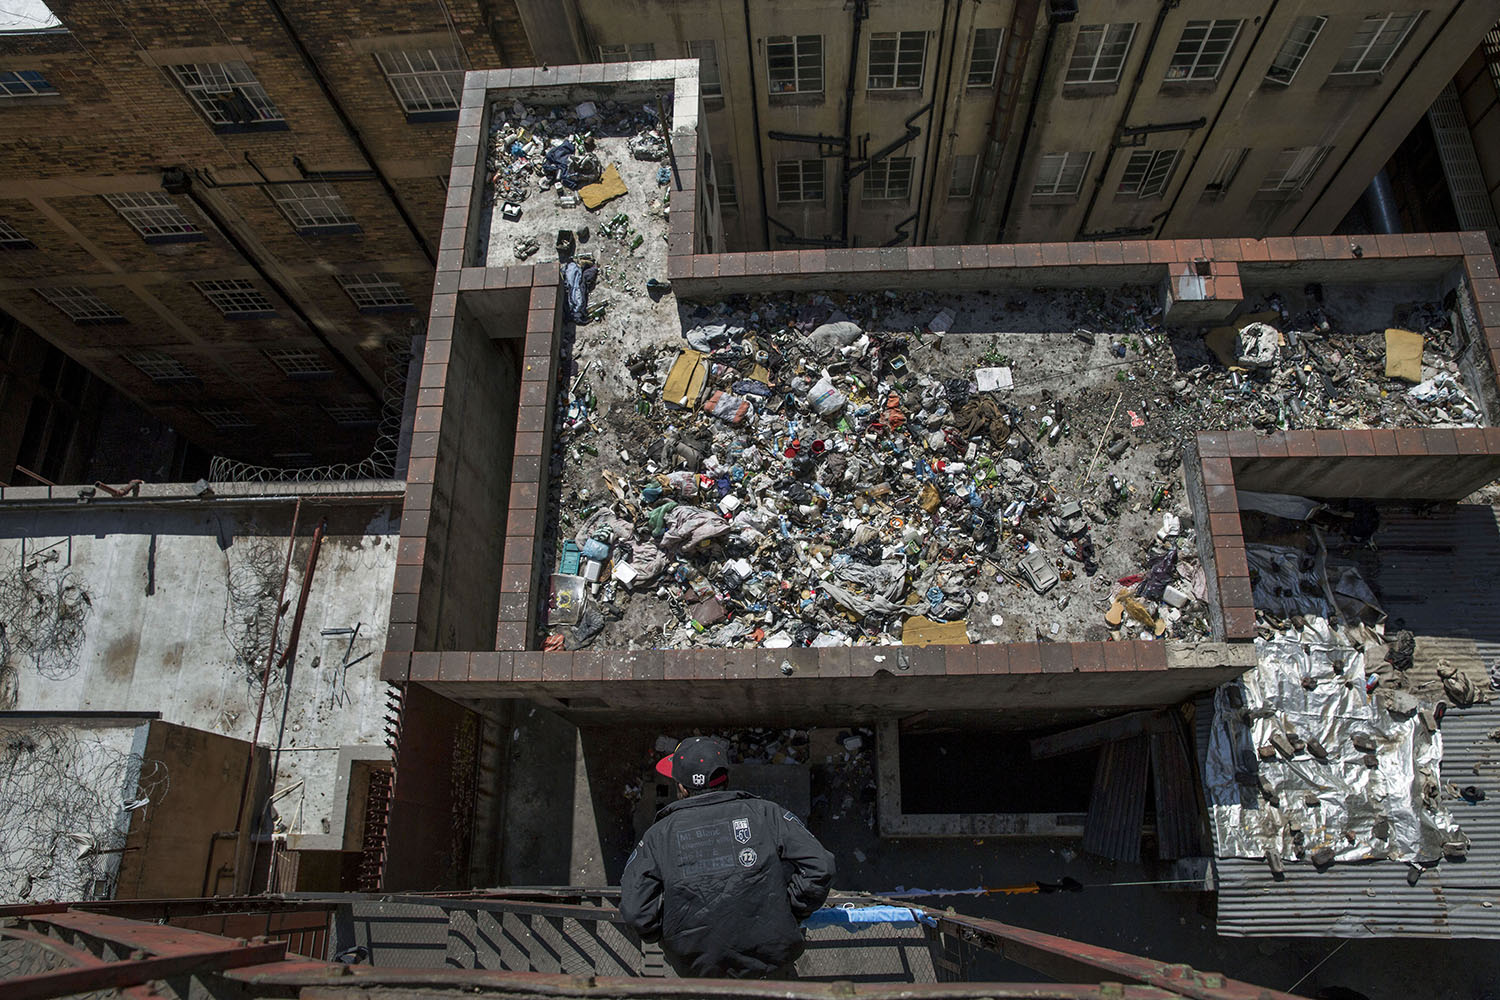 A man looks on to the rubbish filled roof of a derelict building, in the inner city of Johannesburg, Aug. 2, 2015.